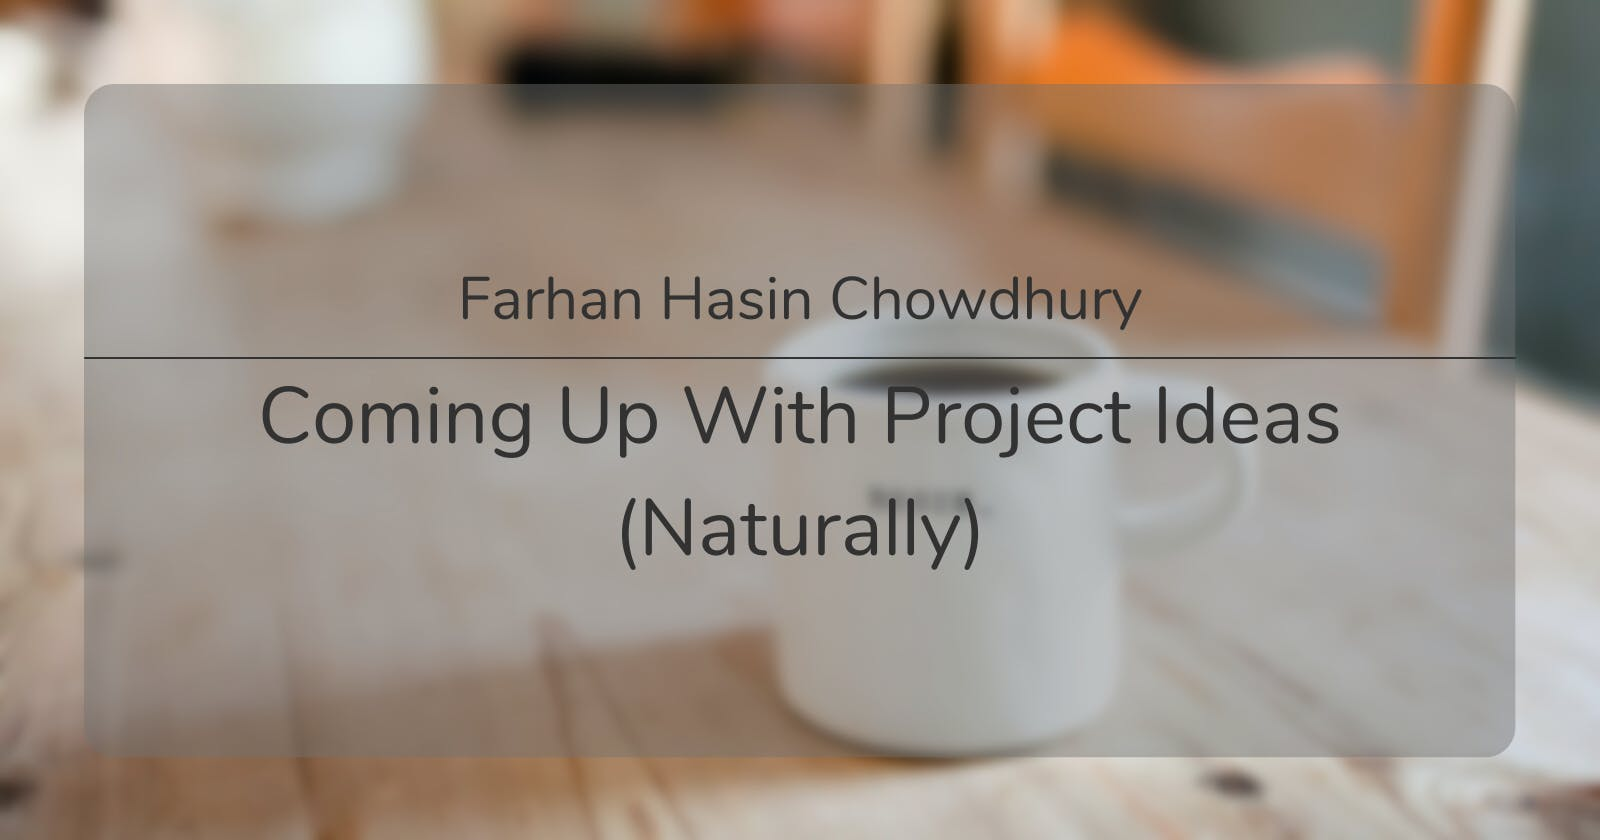 Coming Up With Project Ideas (Naturally)